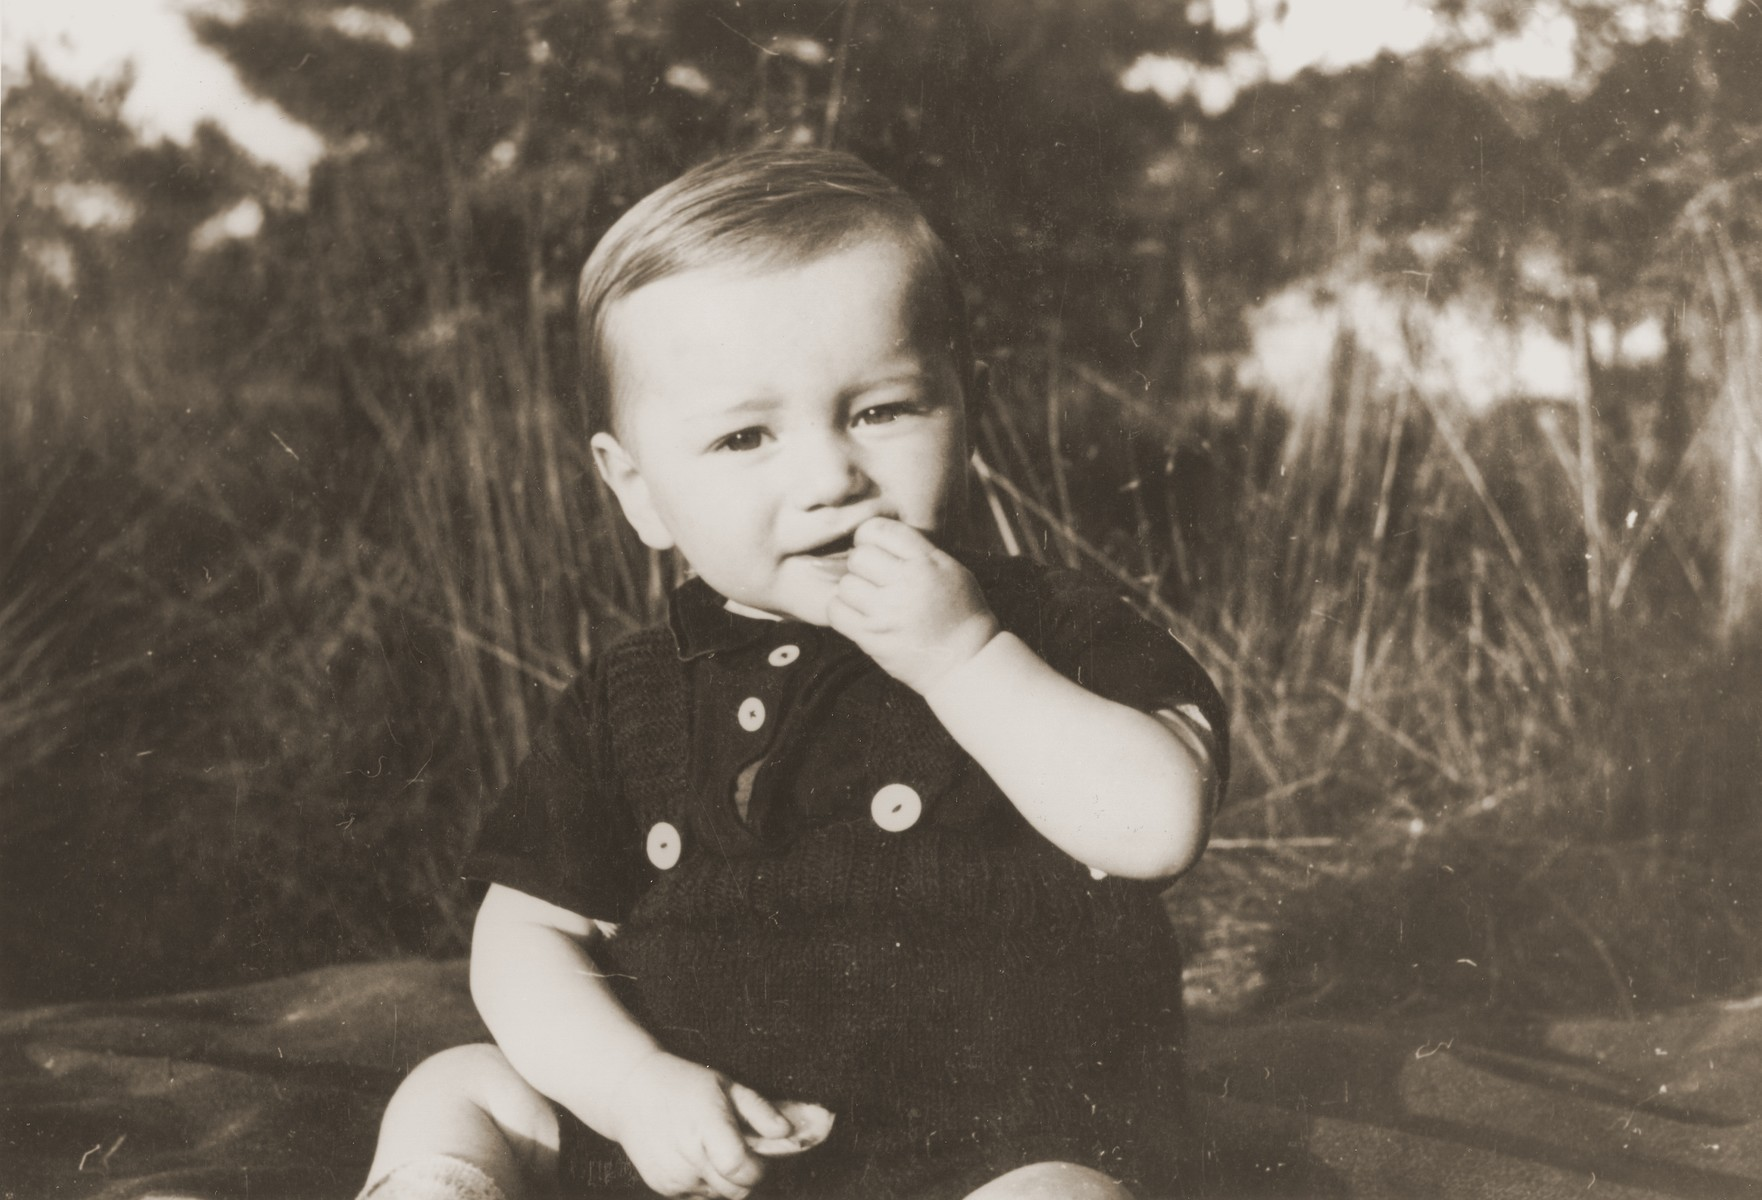 Two-year-old Manfred Stern sits in a field.